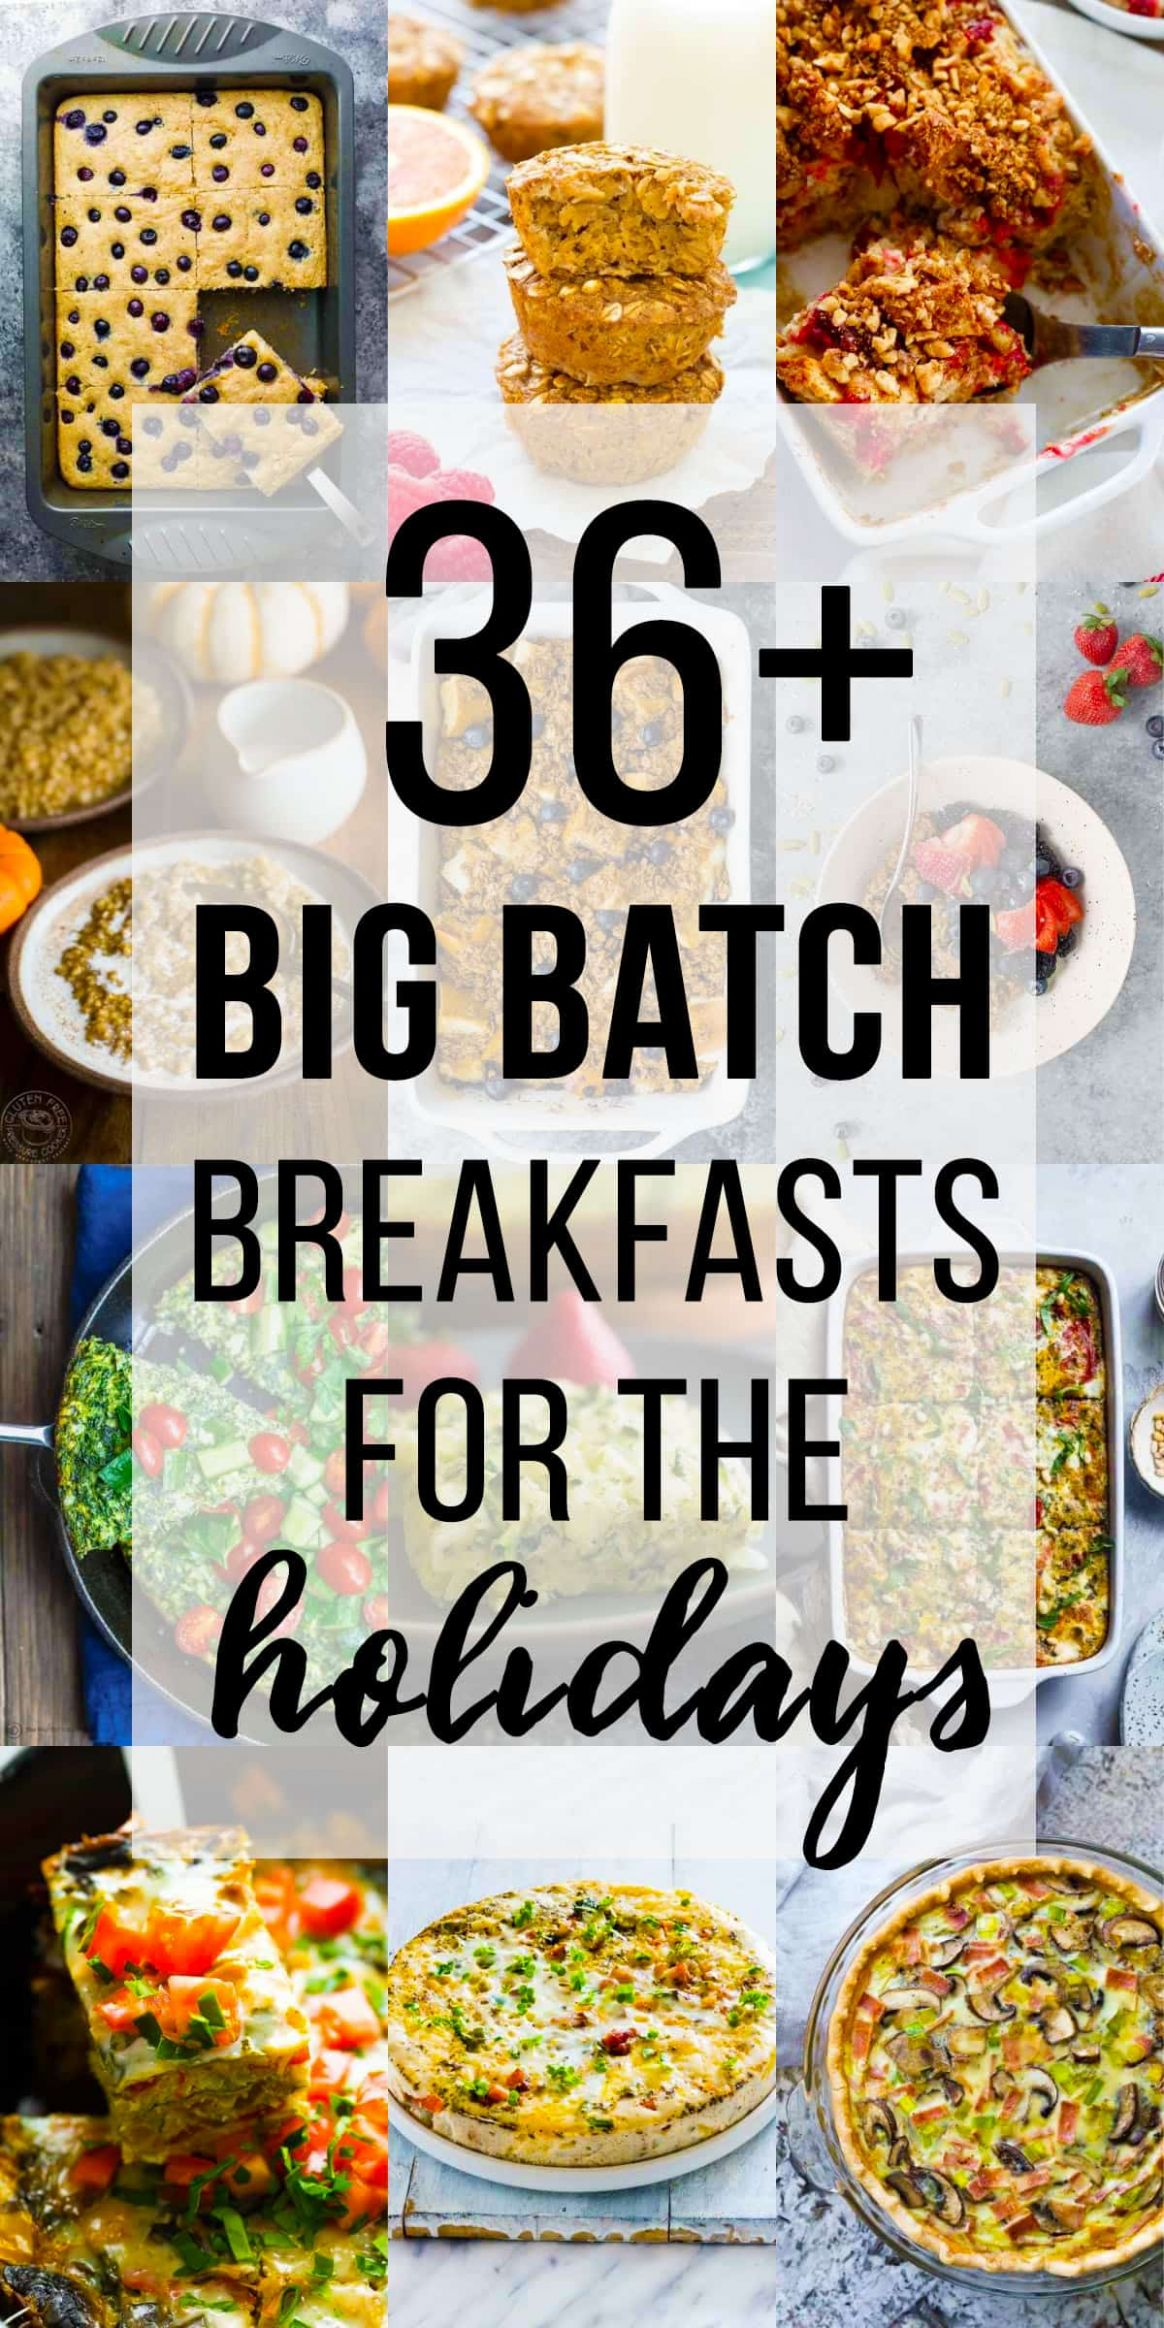 10+ Big Batch Christmas Breakfast Ideas | Sweet Peas and Saffron - Breakfast Recipes For A Crowd